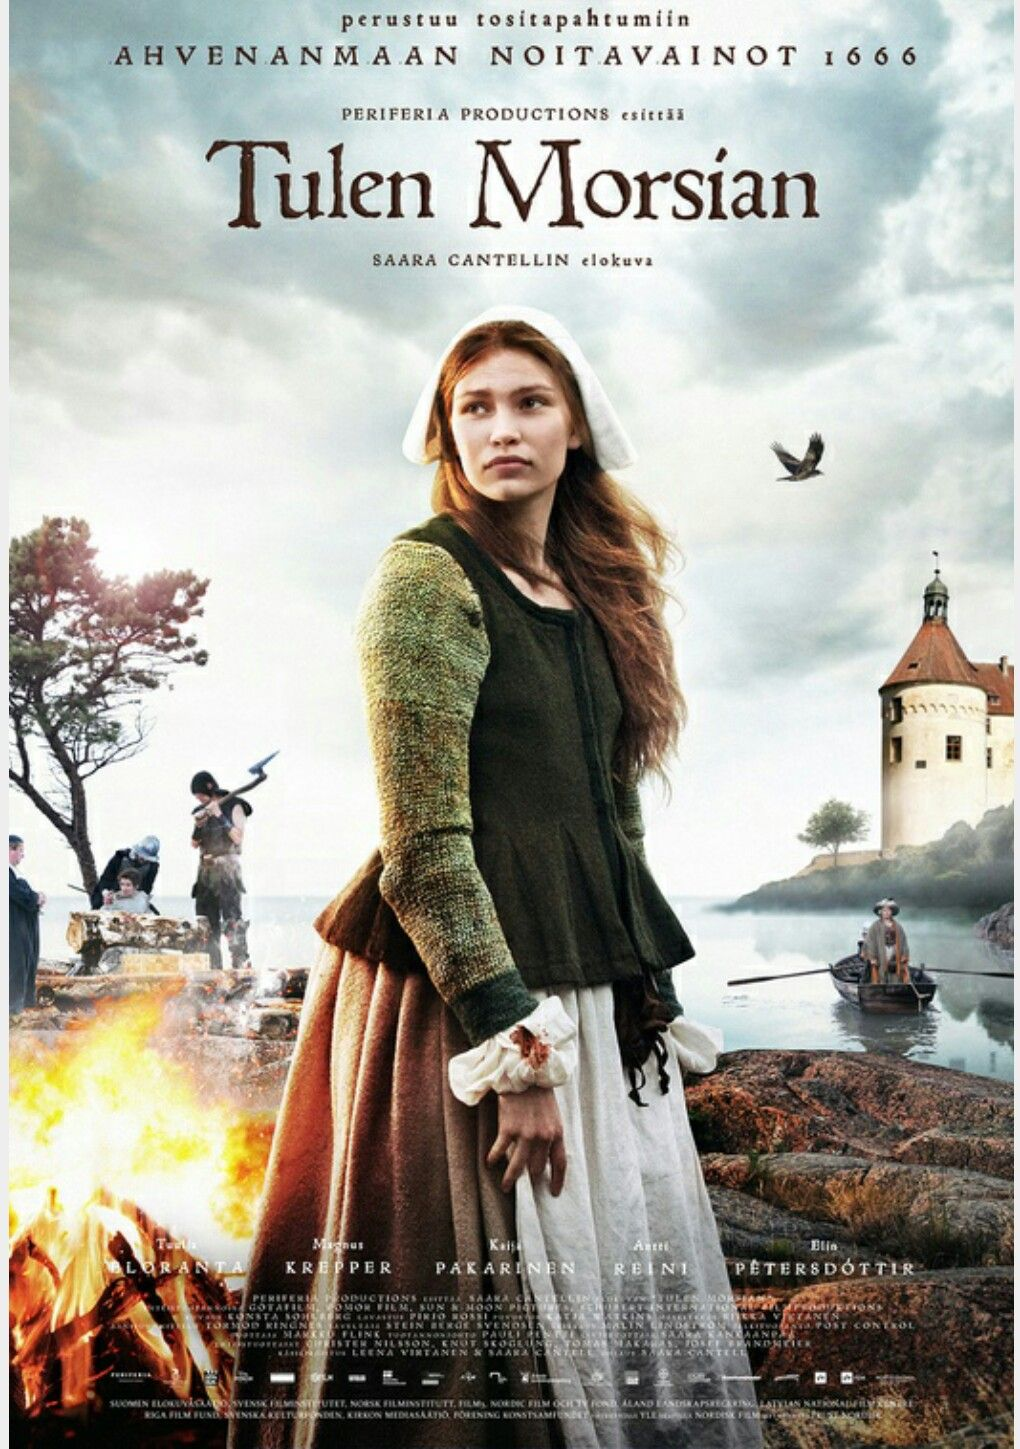 Devils Bride A True Story Netflix On A Small Finnish Island In 1666 A Teenage Girl In Love Whit A Married Fisherman Be Bride Movies Full Movies Online Free